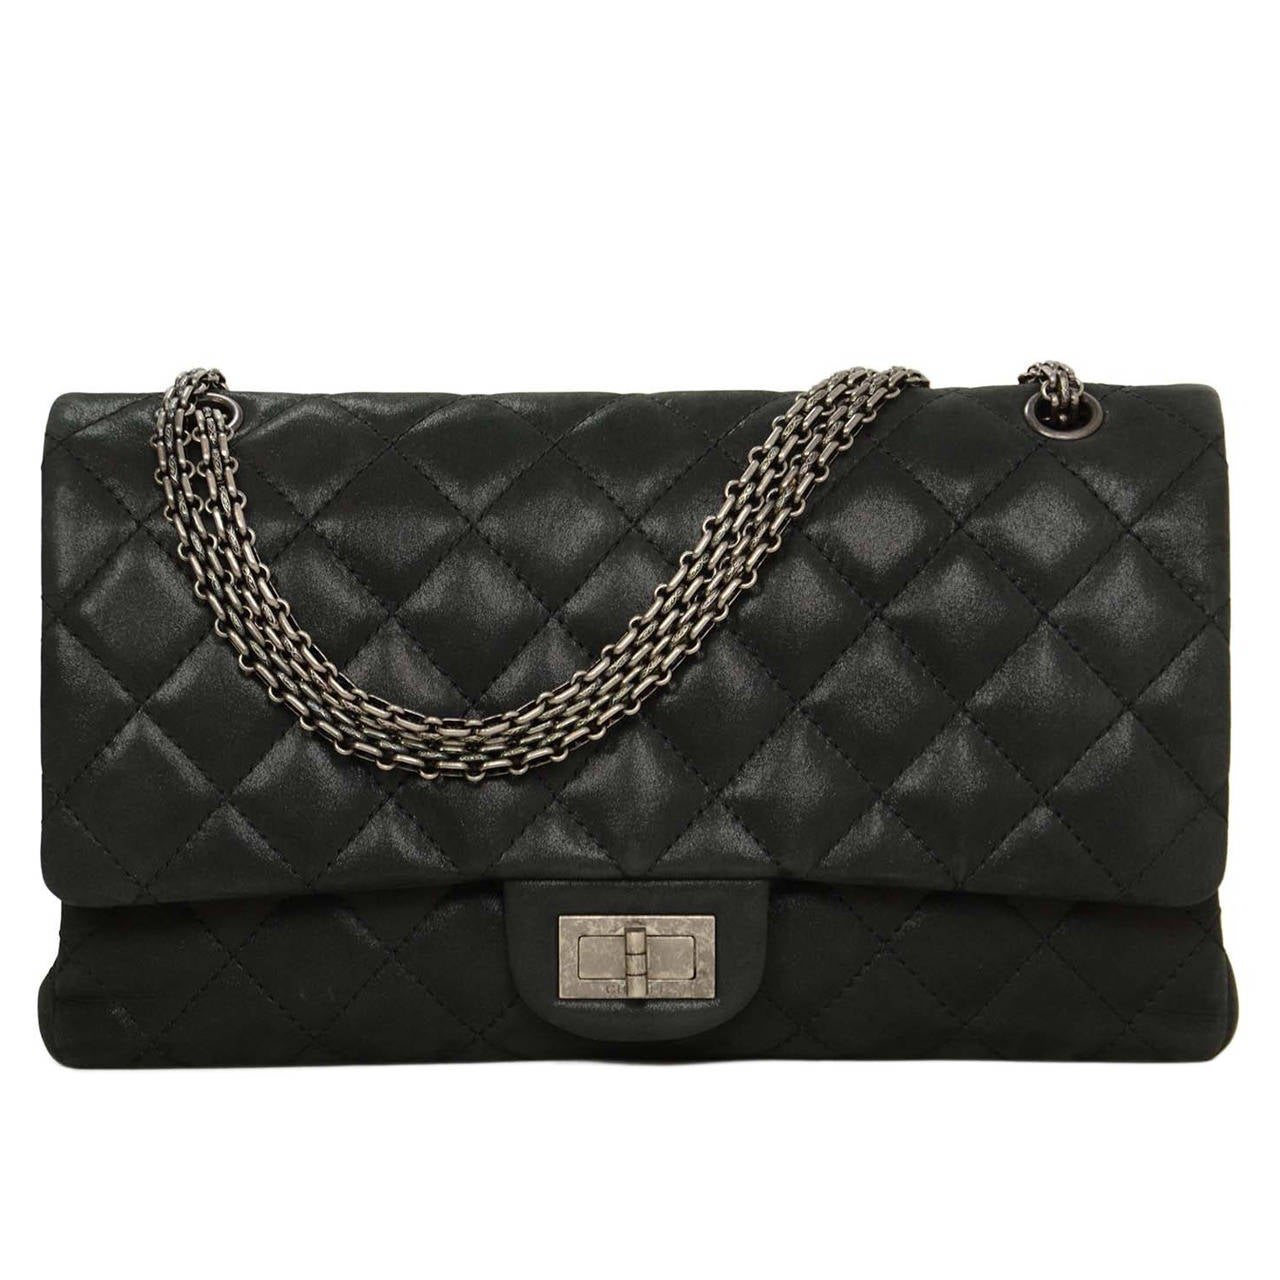 d92a8e8ba5f5 Chanel Black Iridescent Calfskin 2.55 Reissue Quilted 227 Classic Maxi Flap  Bag For Sale